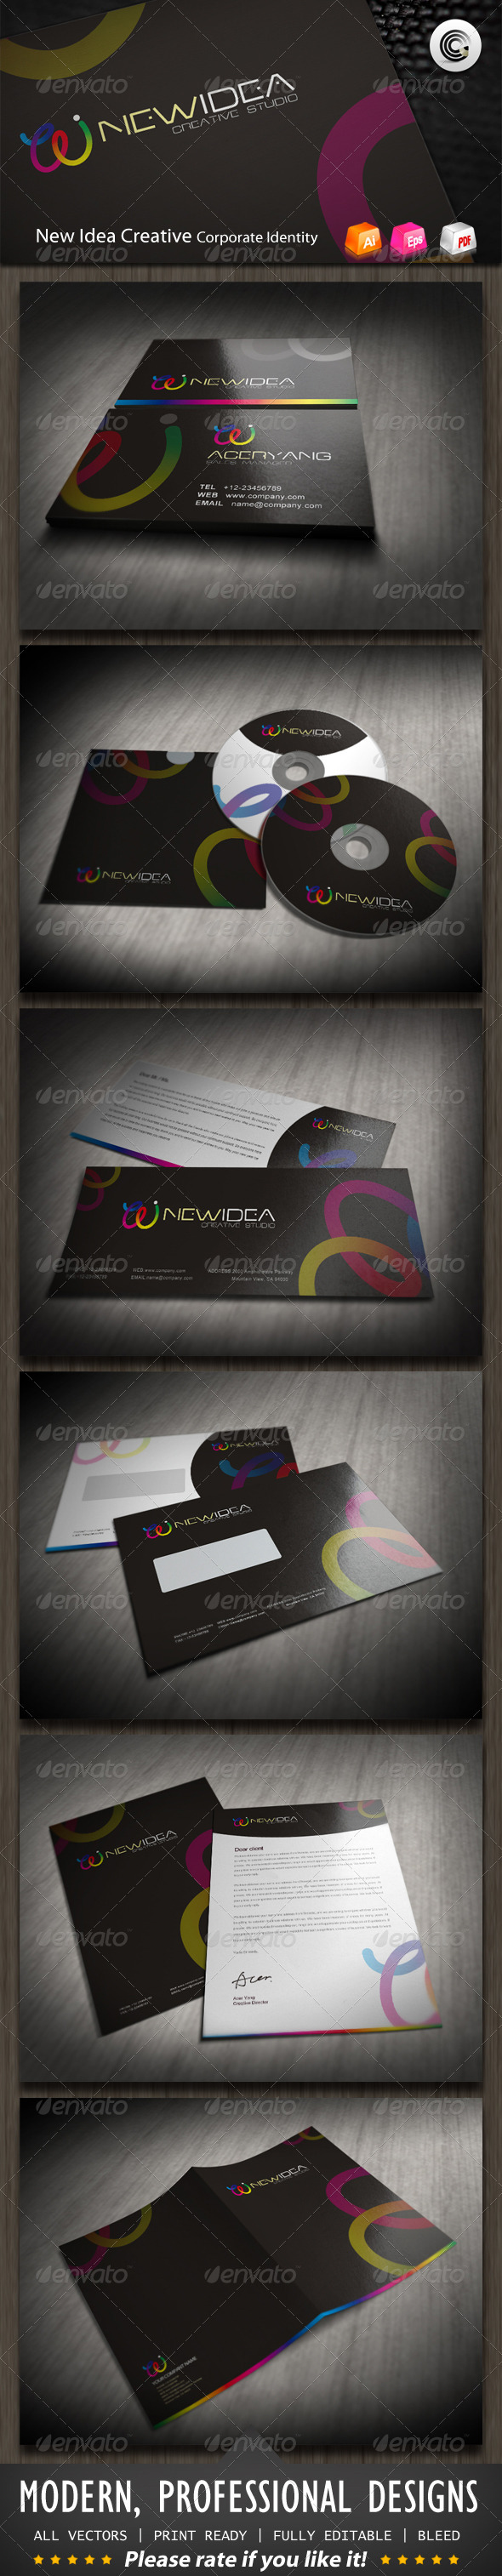 New Idea Creative Studio Corporate Identity - Stationery Print Templates